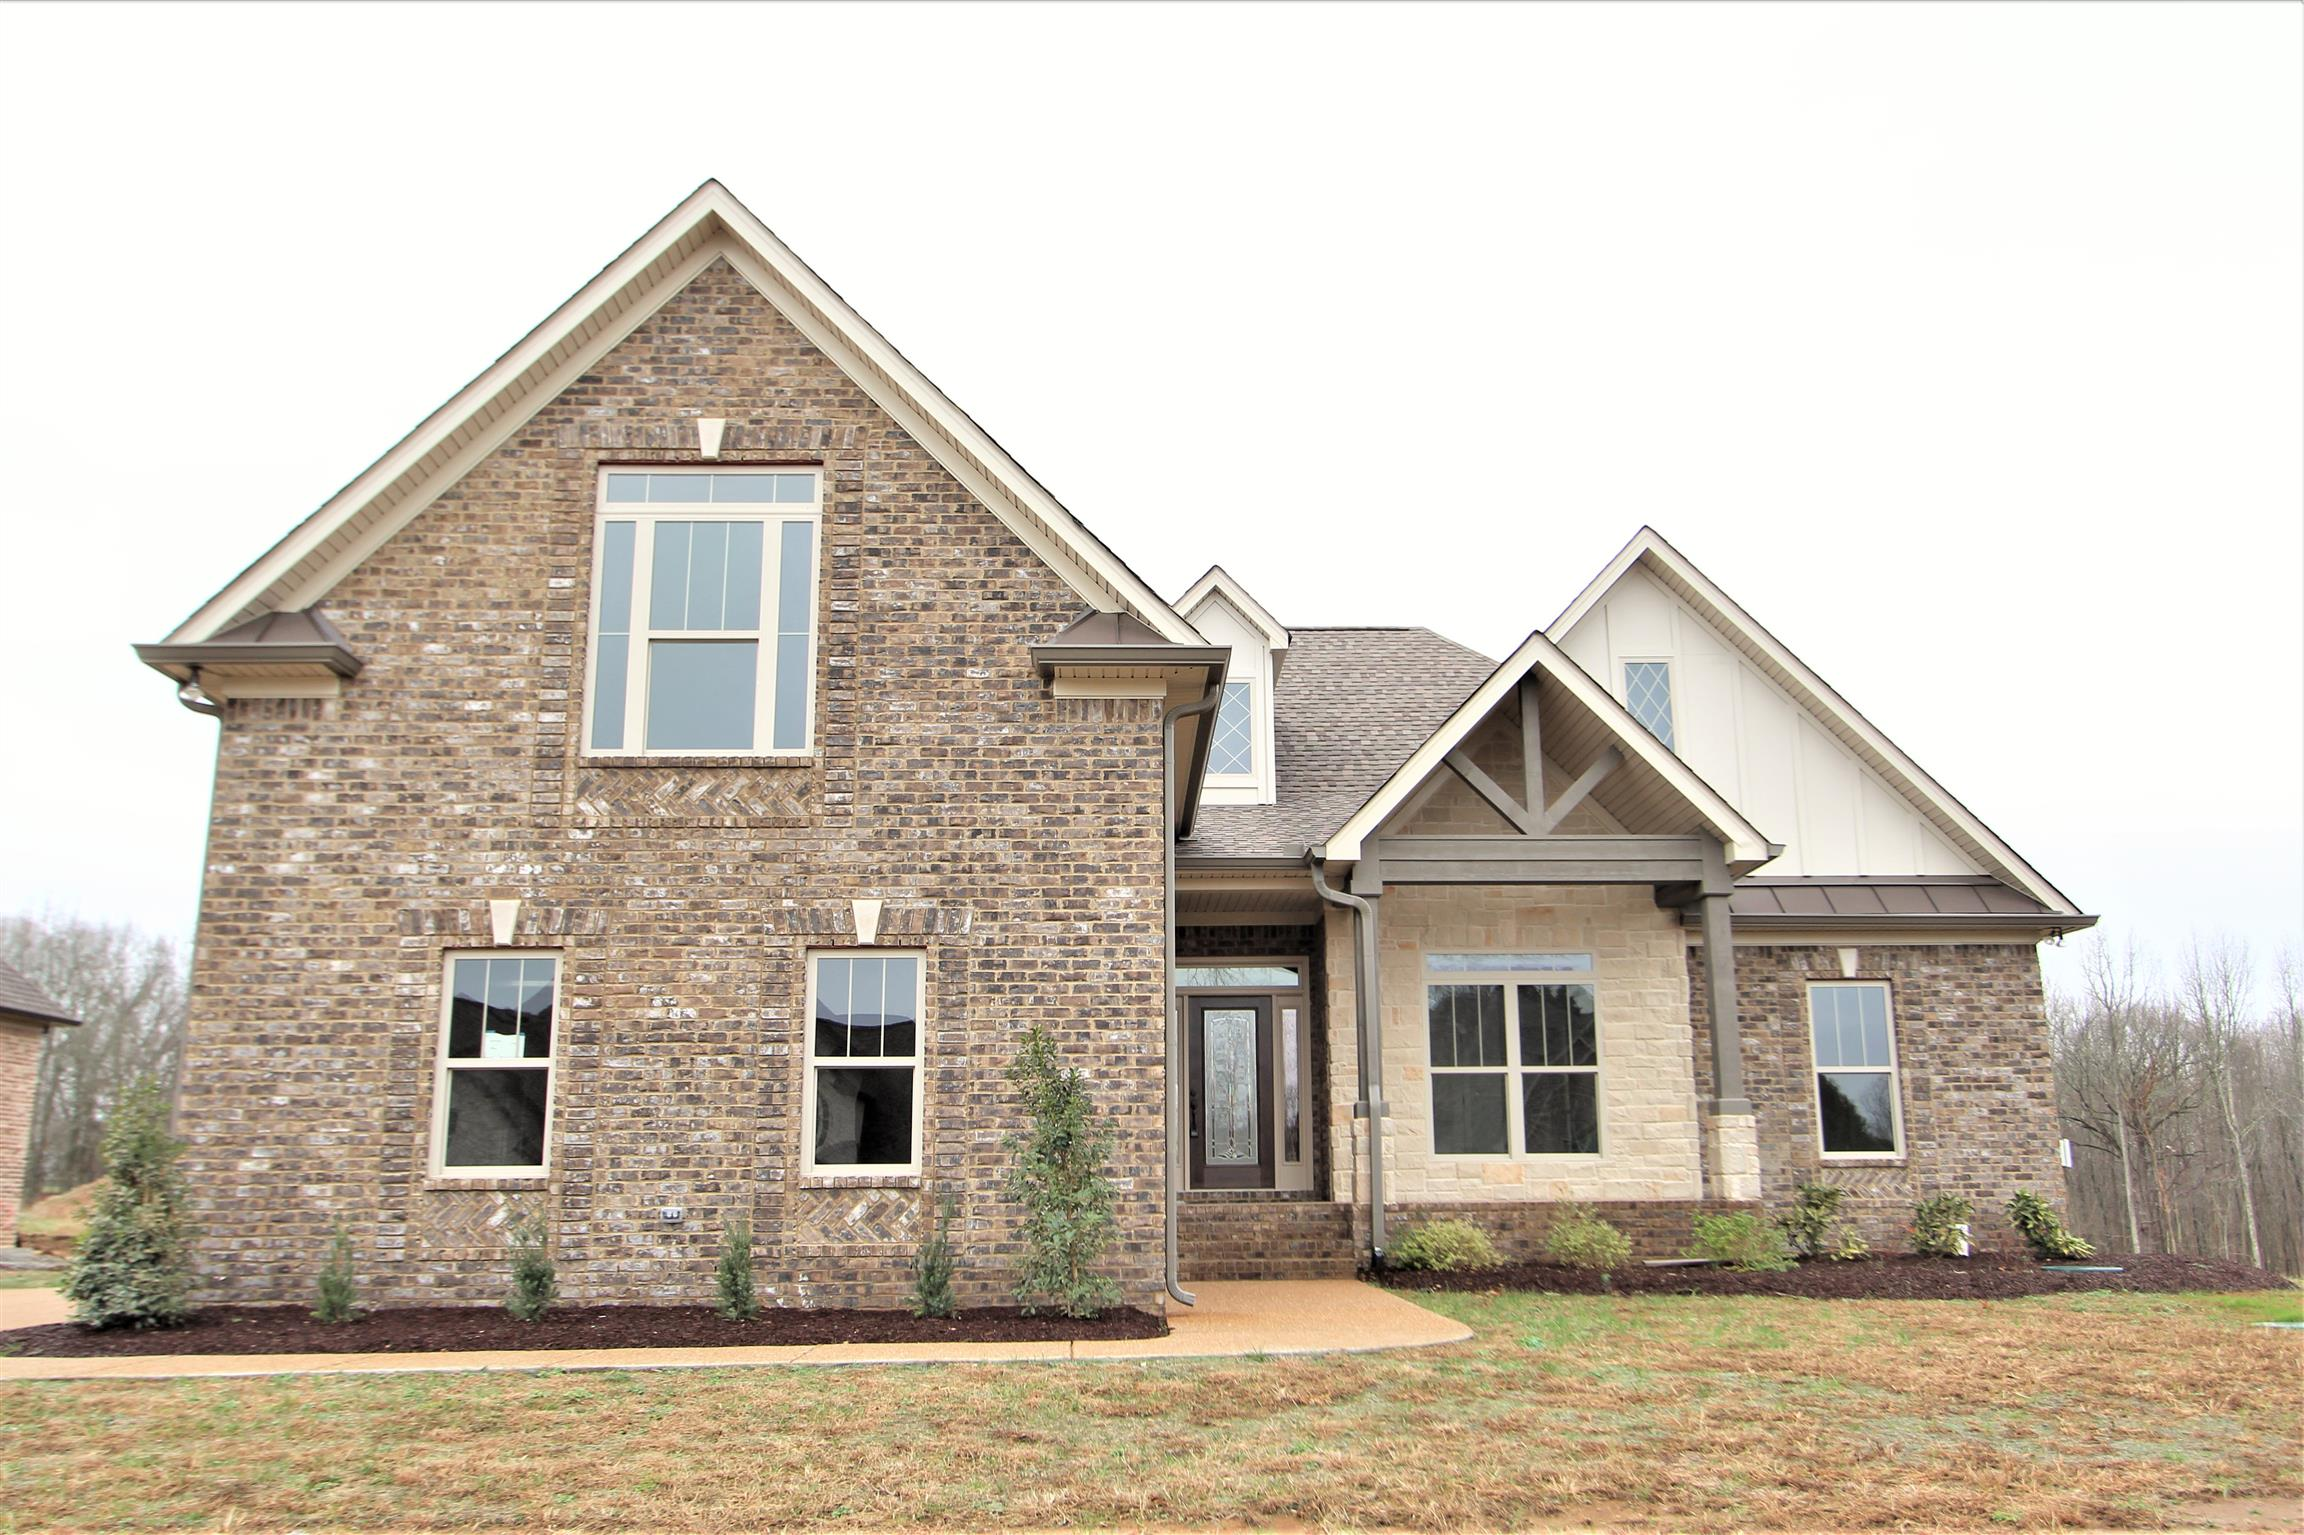 306 Fawns Pass #30, Lebanon, TN 37087 - Lebanon, TN real estate listing